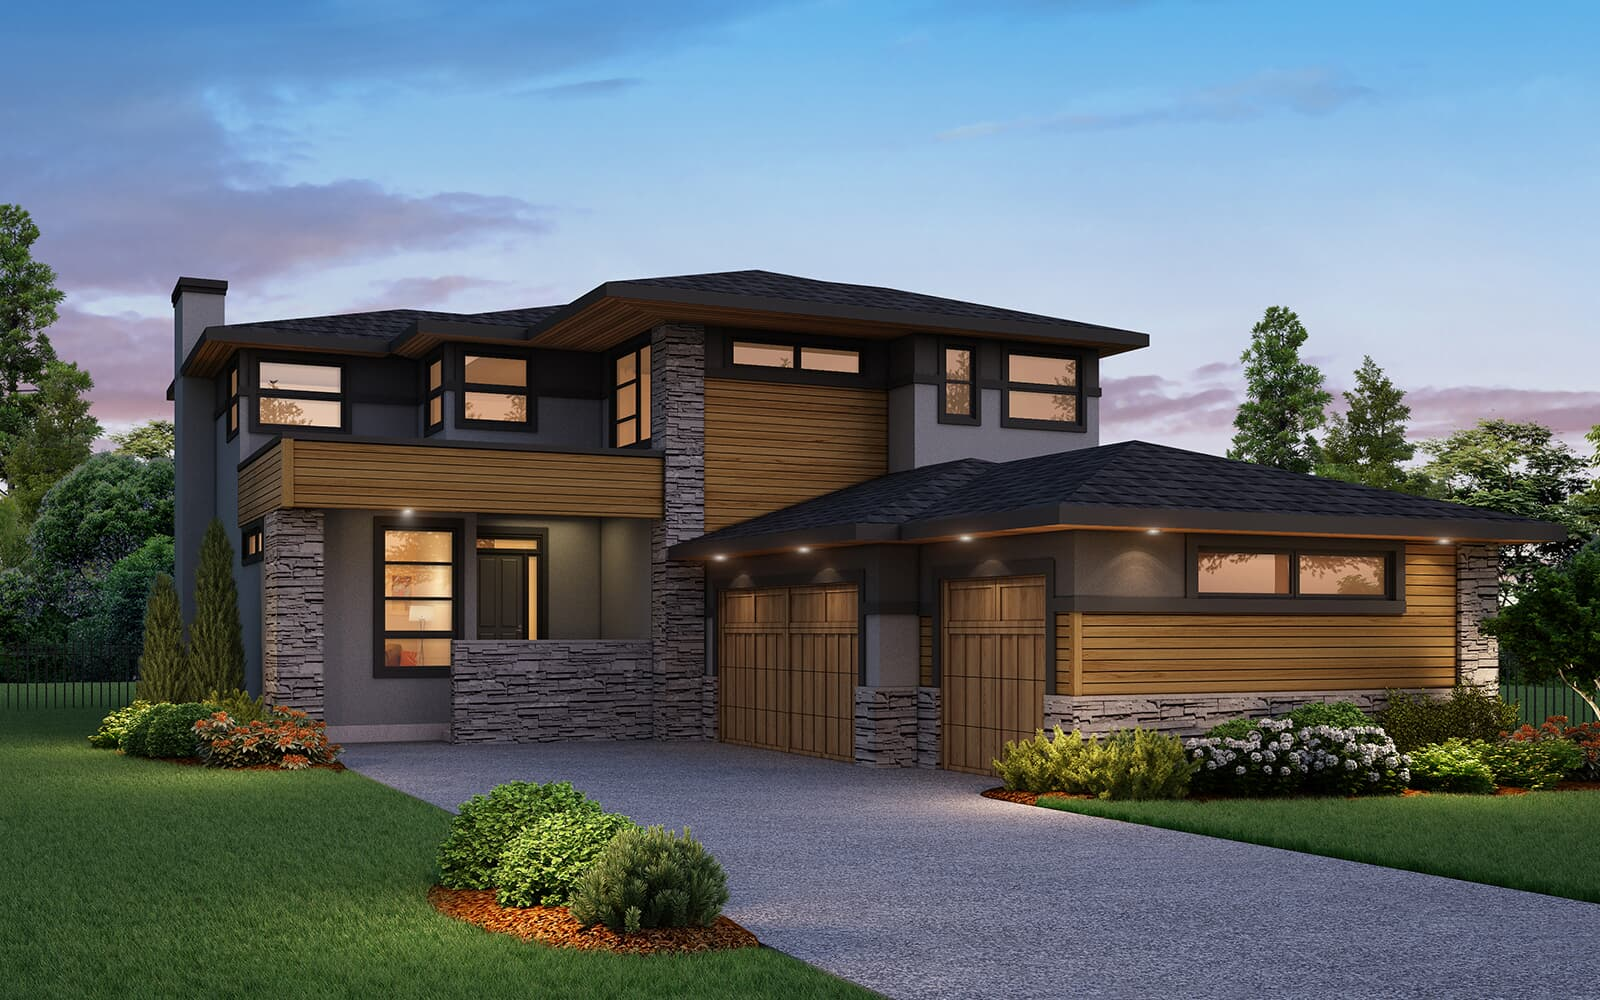 Exterior Rendering for the Prairie elevation of the imperia in cranston